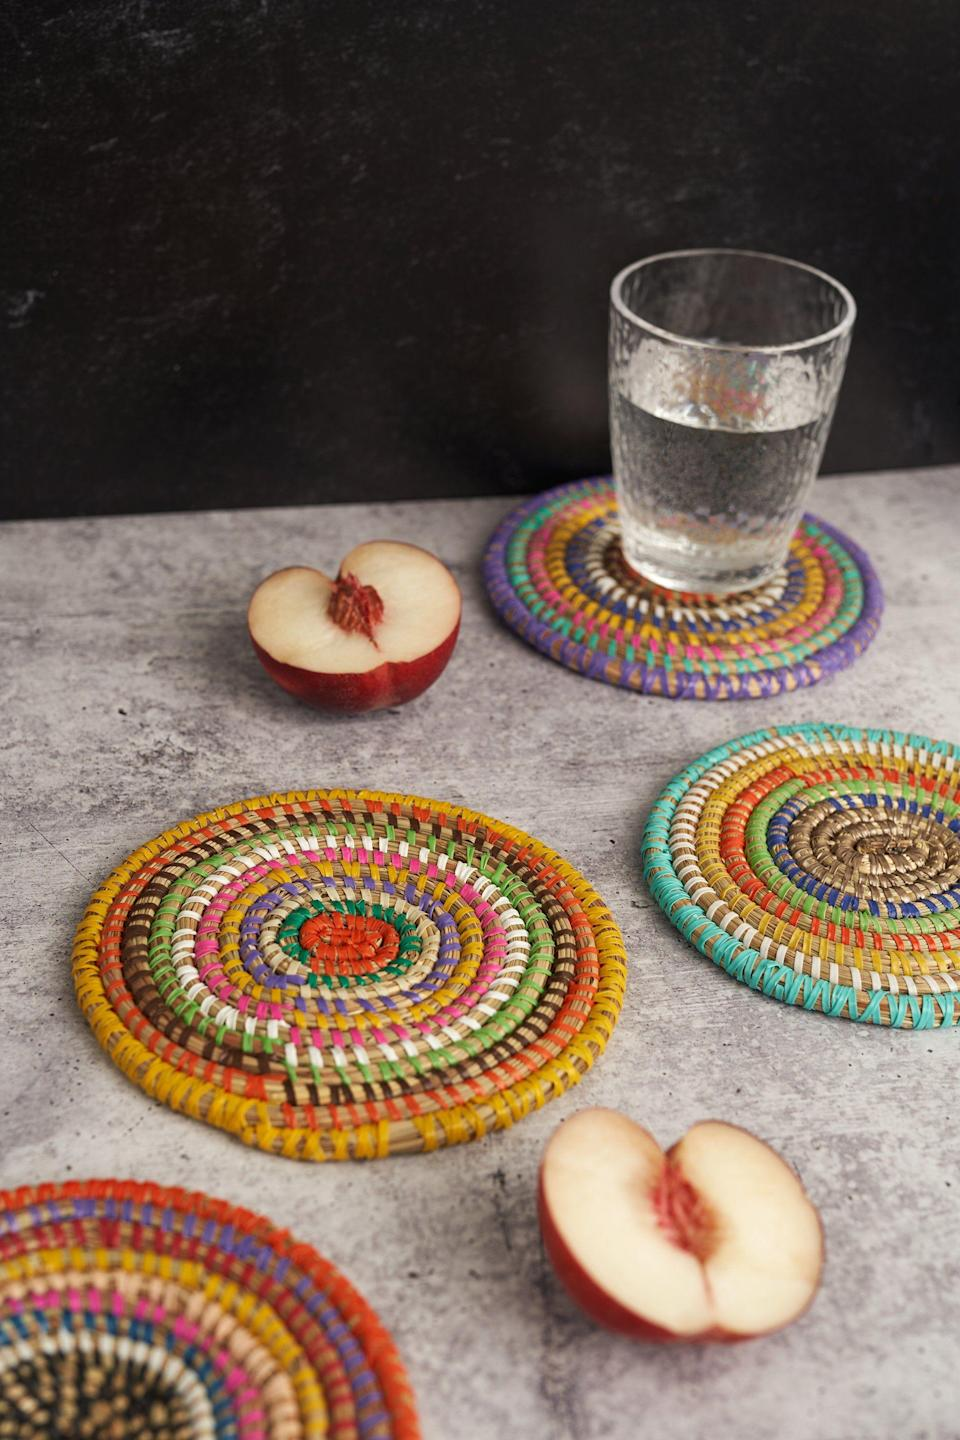 """<p>expeditionsubsahara.com</p><p><strong>$39.00</strong></p><p><a href=""""https://expeditionsubsahara.com/collections/coasters/products/zalipah-woven-coasters-set-of-4"""" rel=""""nofollow noopener"""" target=""""_blank"""" data-ylk=""""slk:Shop Now"""" class=""""link rapid-noclick-resp"""">Shop Now</a></p><p>Add a pop of color to your host's home with these woven coasters, handmade in Senegal. </p>"""